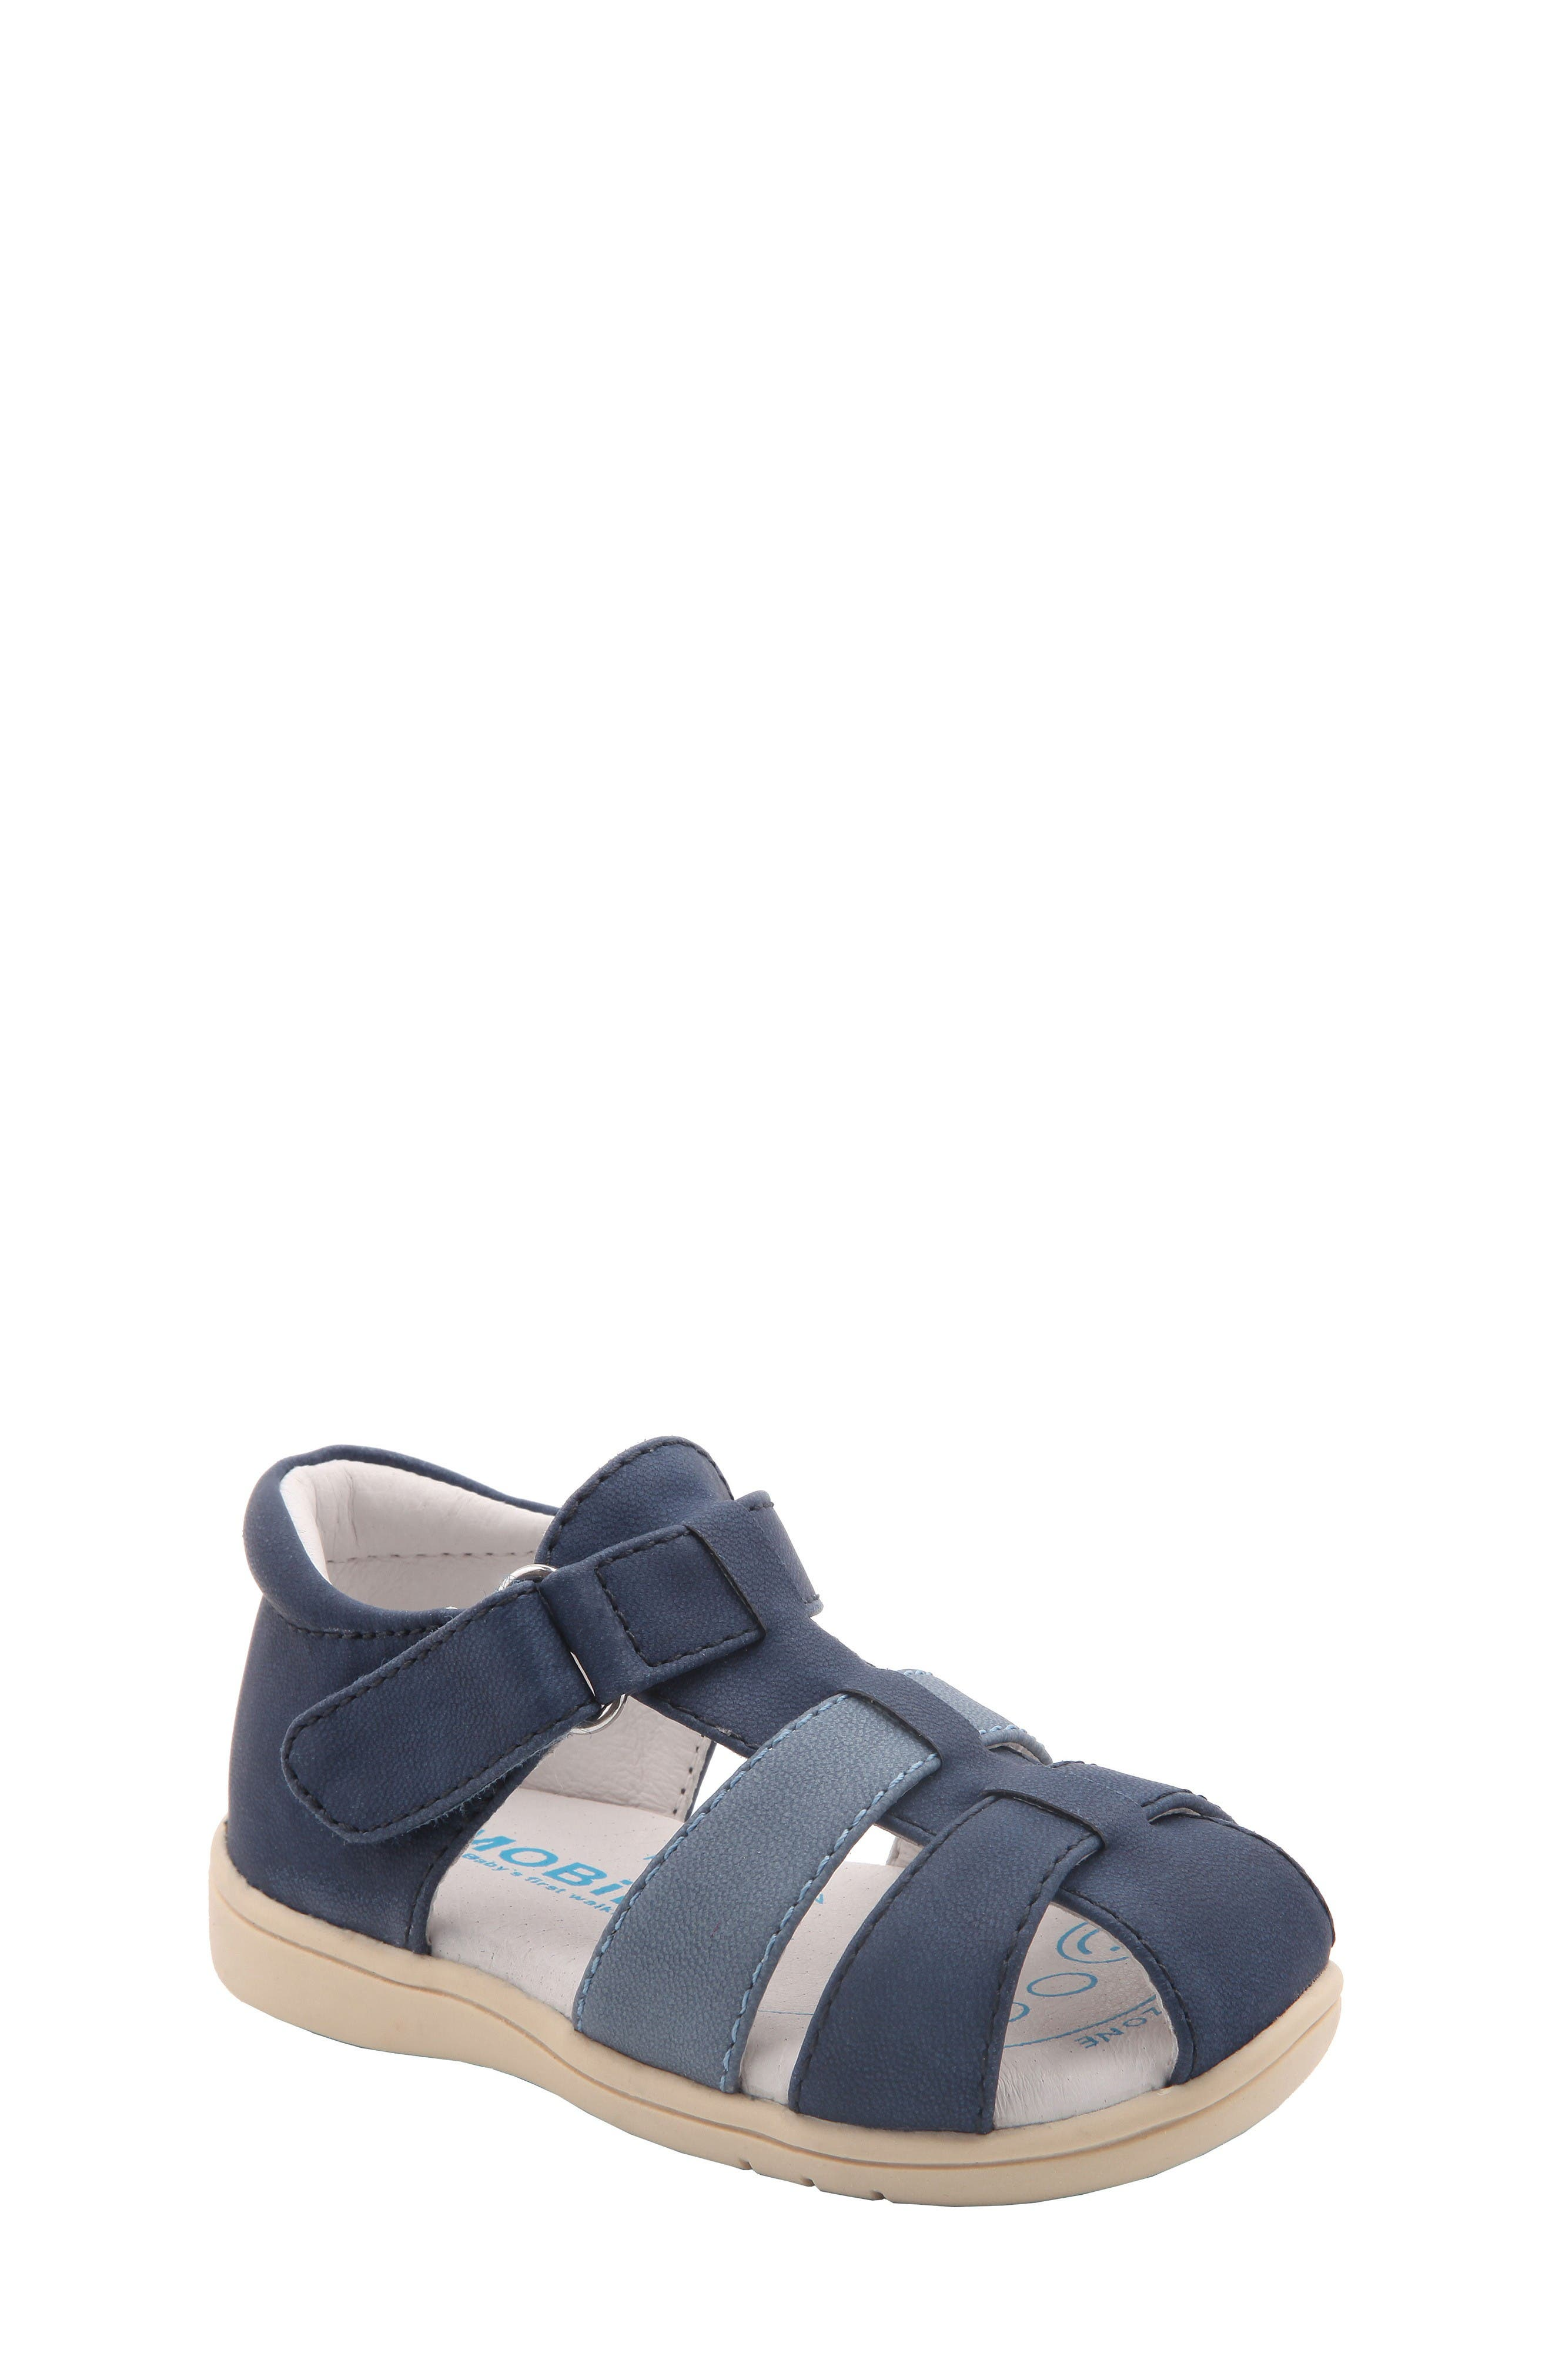 Gage Fisherman Sandal,                         Main,                         color, Navy Faux Leather